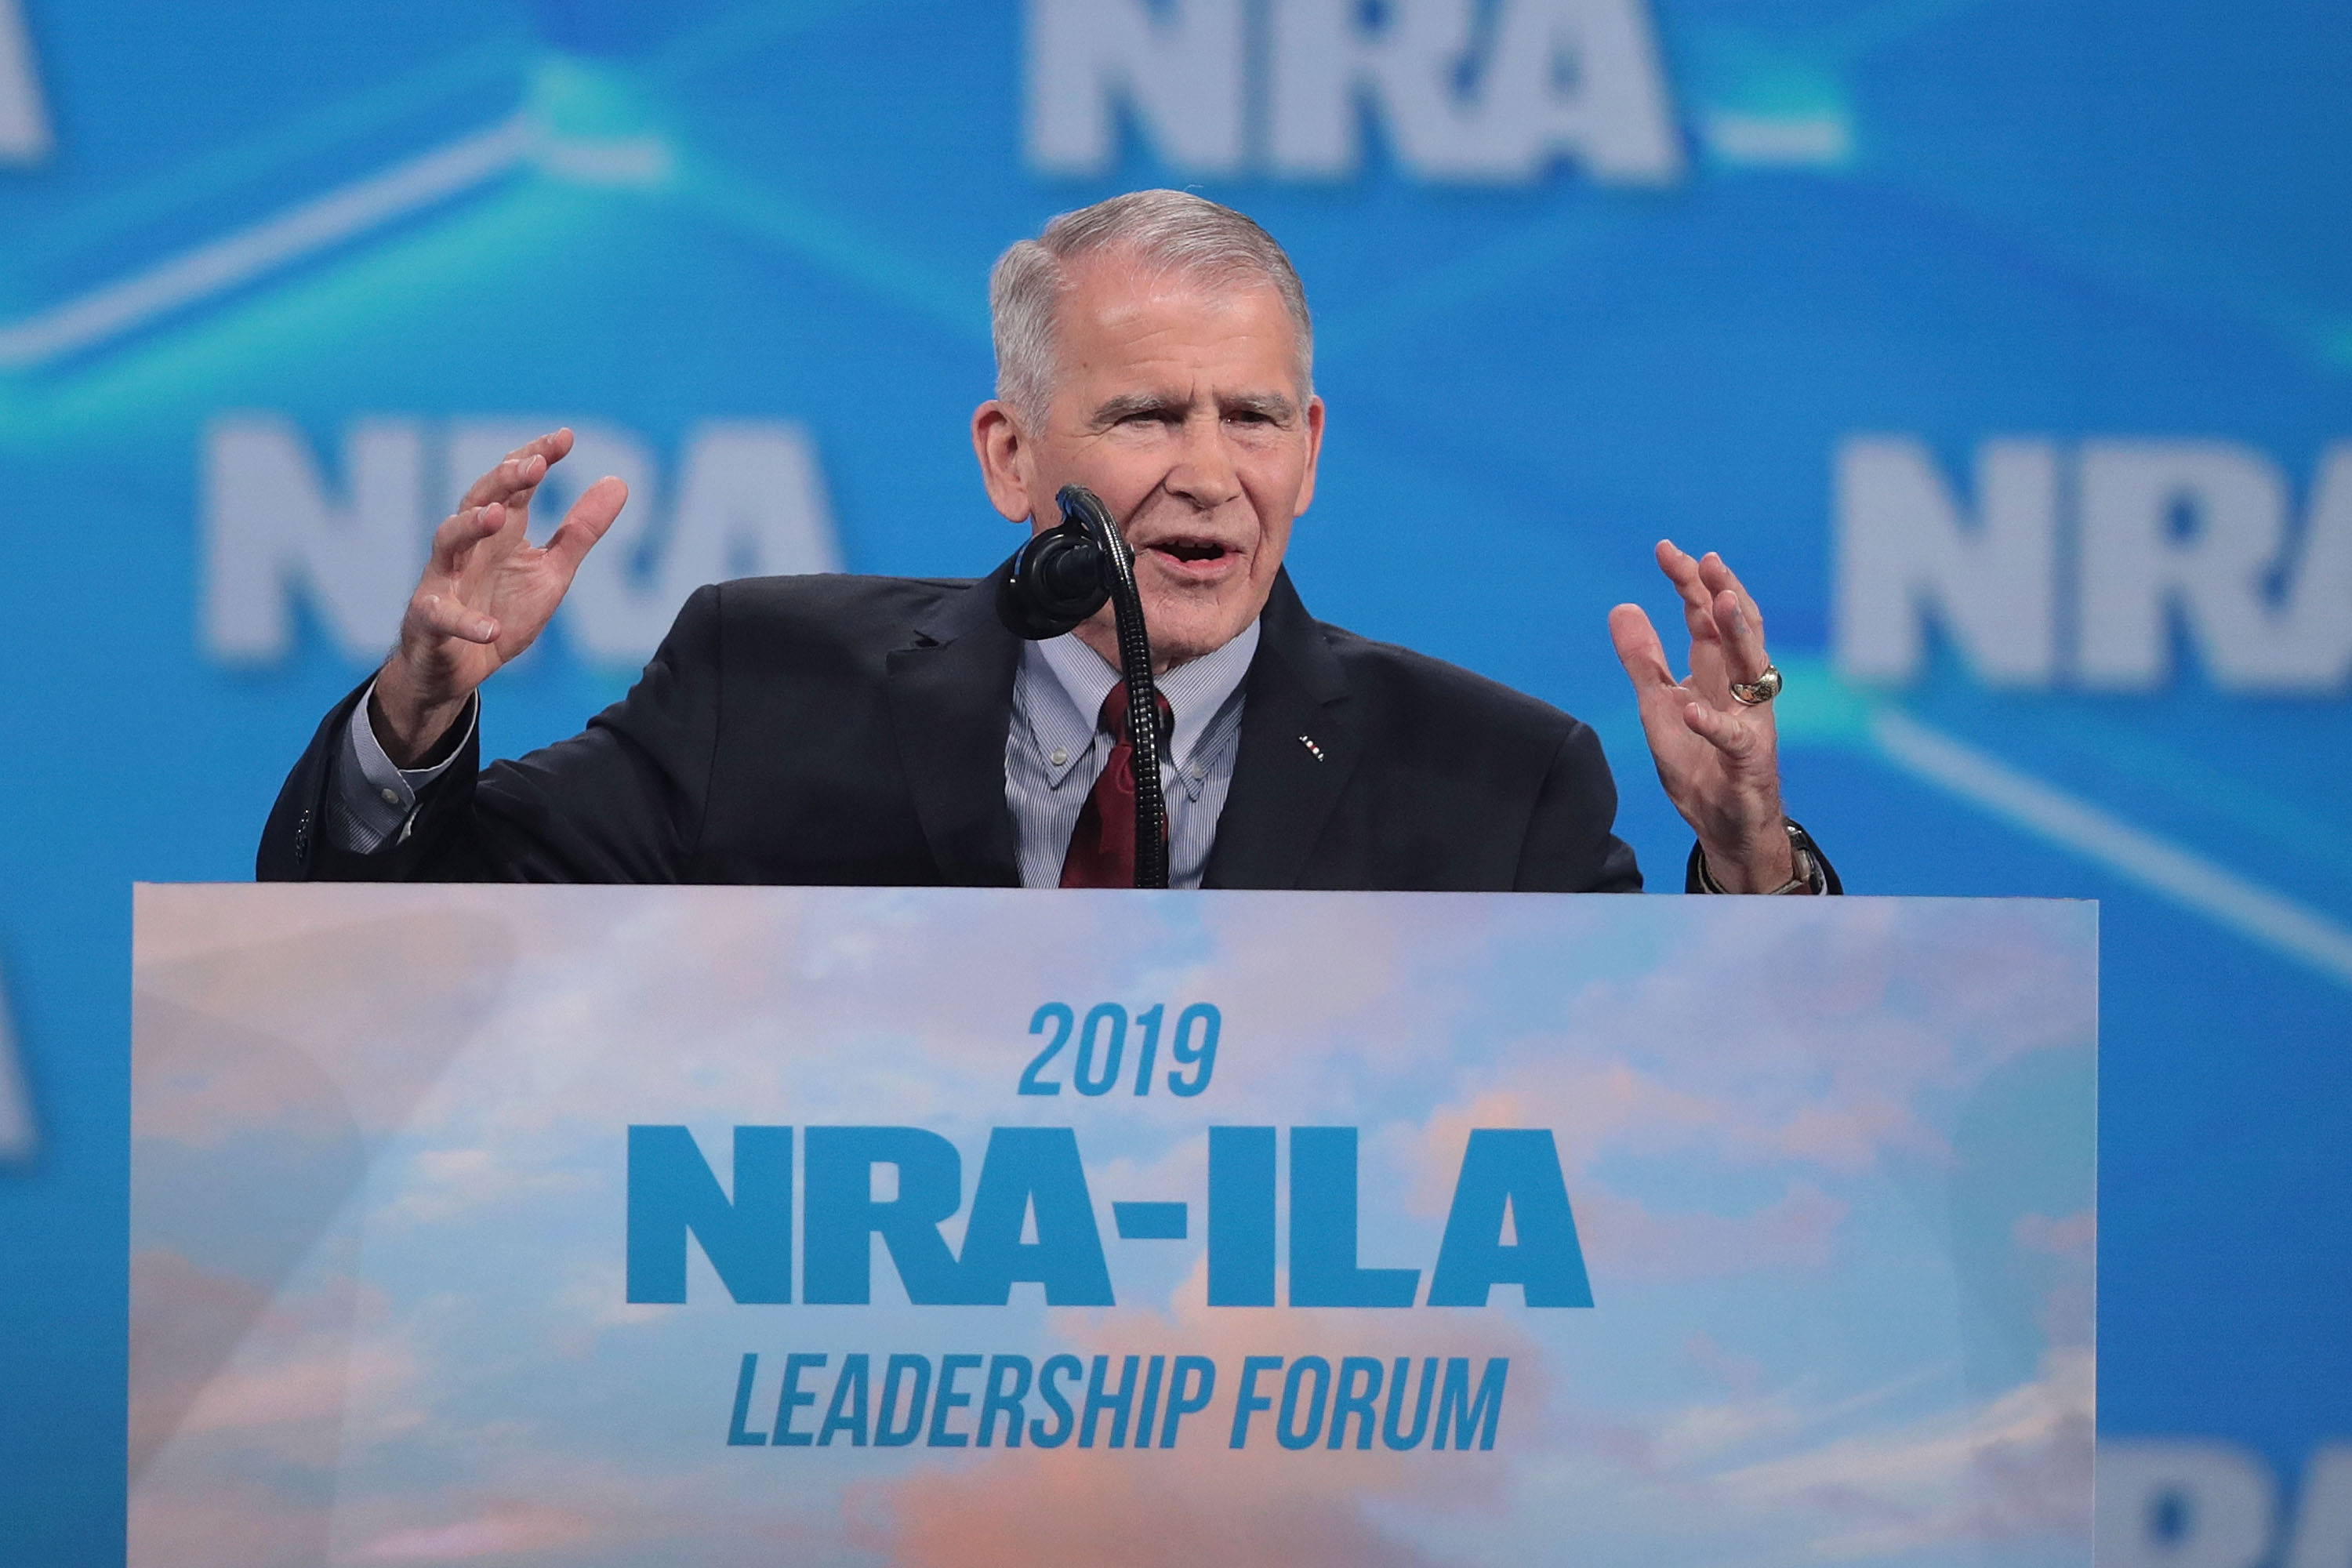 INDIANAPOLIS, INDIANA - APRIL 26: NRA President Oliver North speaks at the NRA-ILA Leadership Forum at the 148th NRA Annual Meetings & Exhibits on April 26, 2019 in Indianapolis, Indiana. The convention, which runs through Sunday, features more than 800 exhibitors and is expected to draw 80,000 guests. (Photo by Scott Olson/Getty Images)